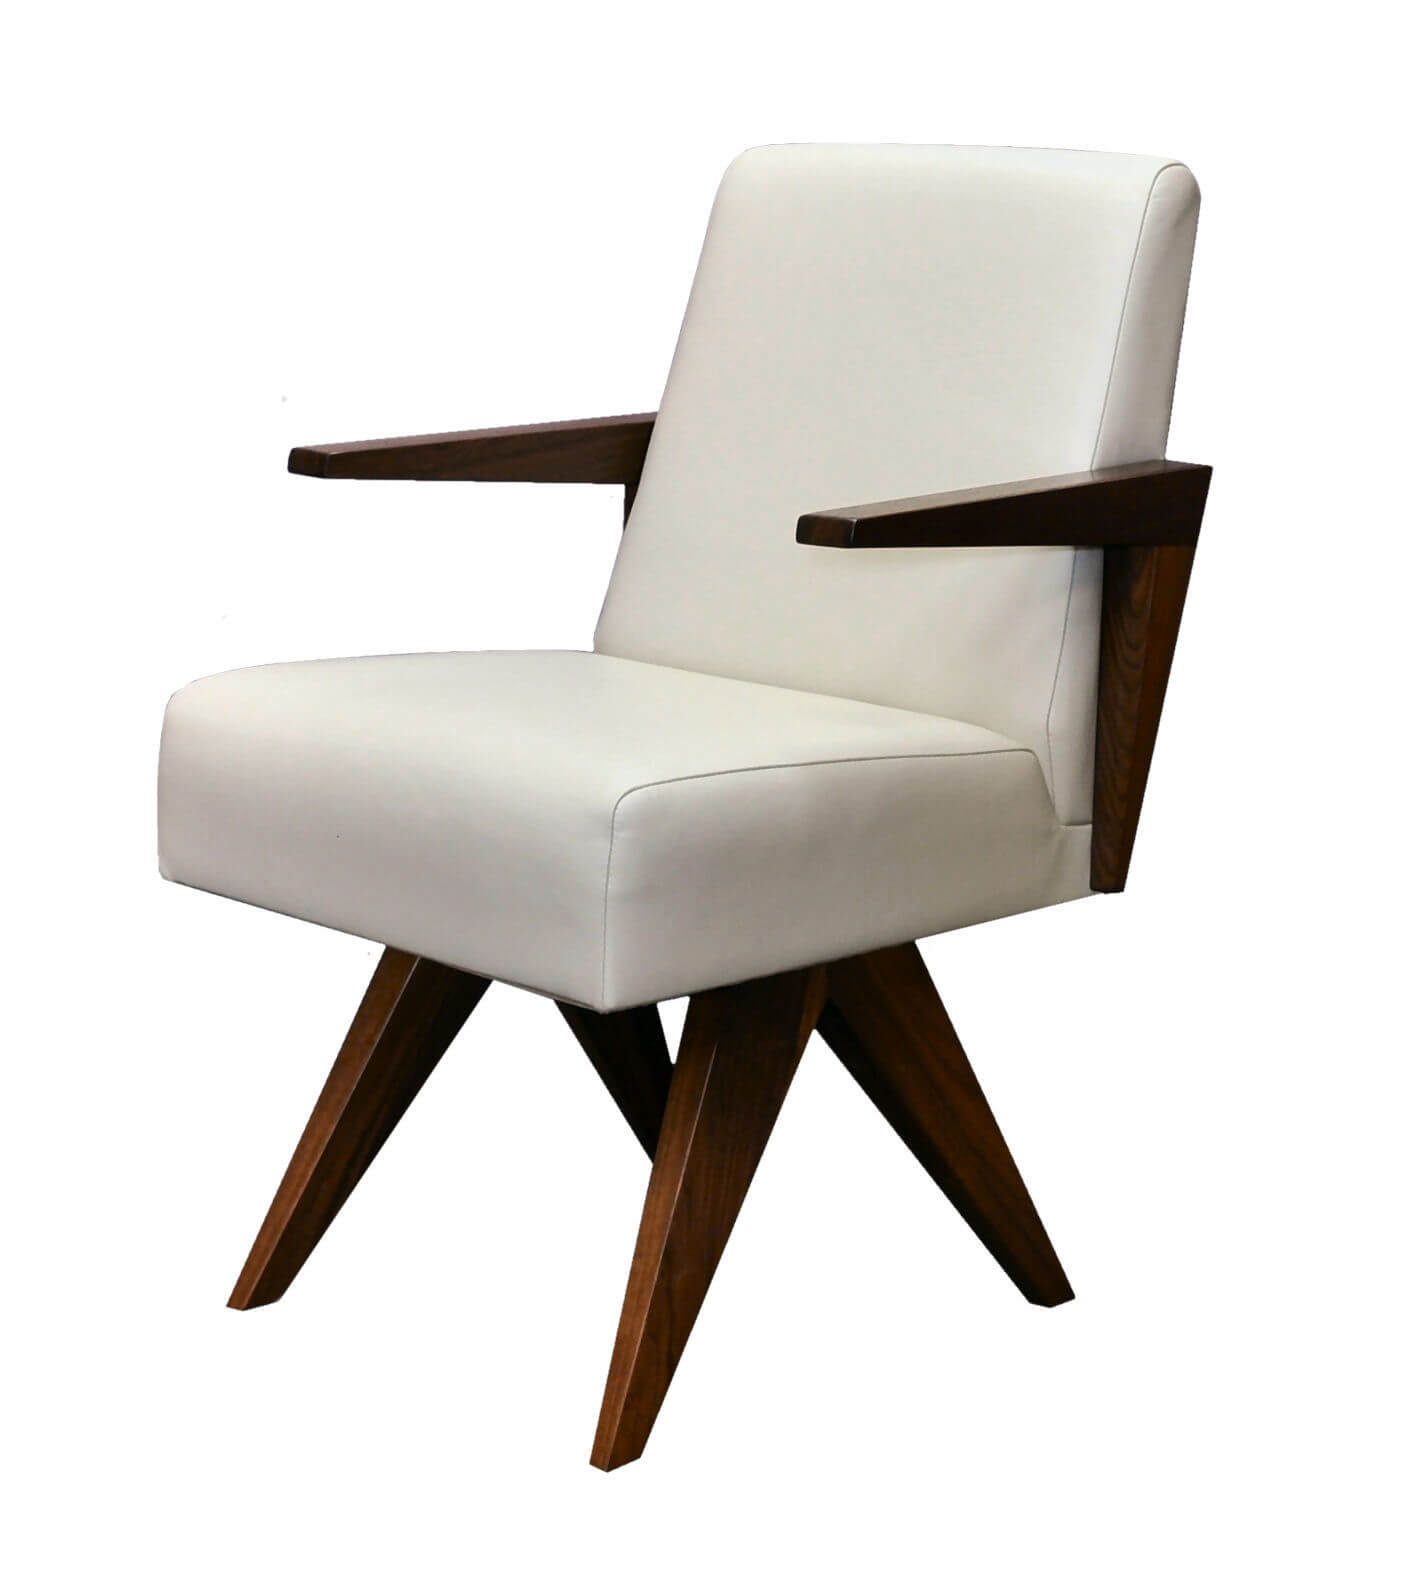 contemporary furniture saskatoon  taylor made furniture - sep   custom made chairs new products contemporary rustic dalemuchowski comment